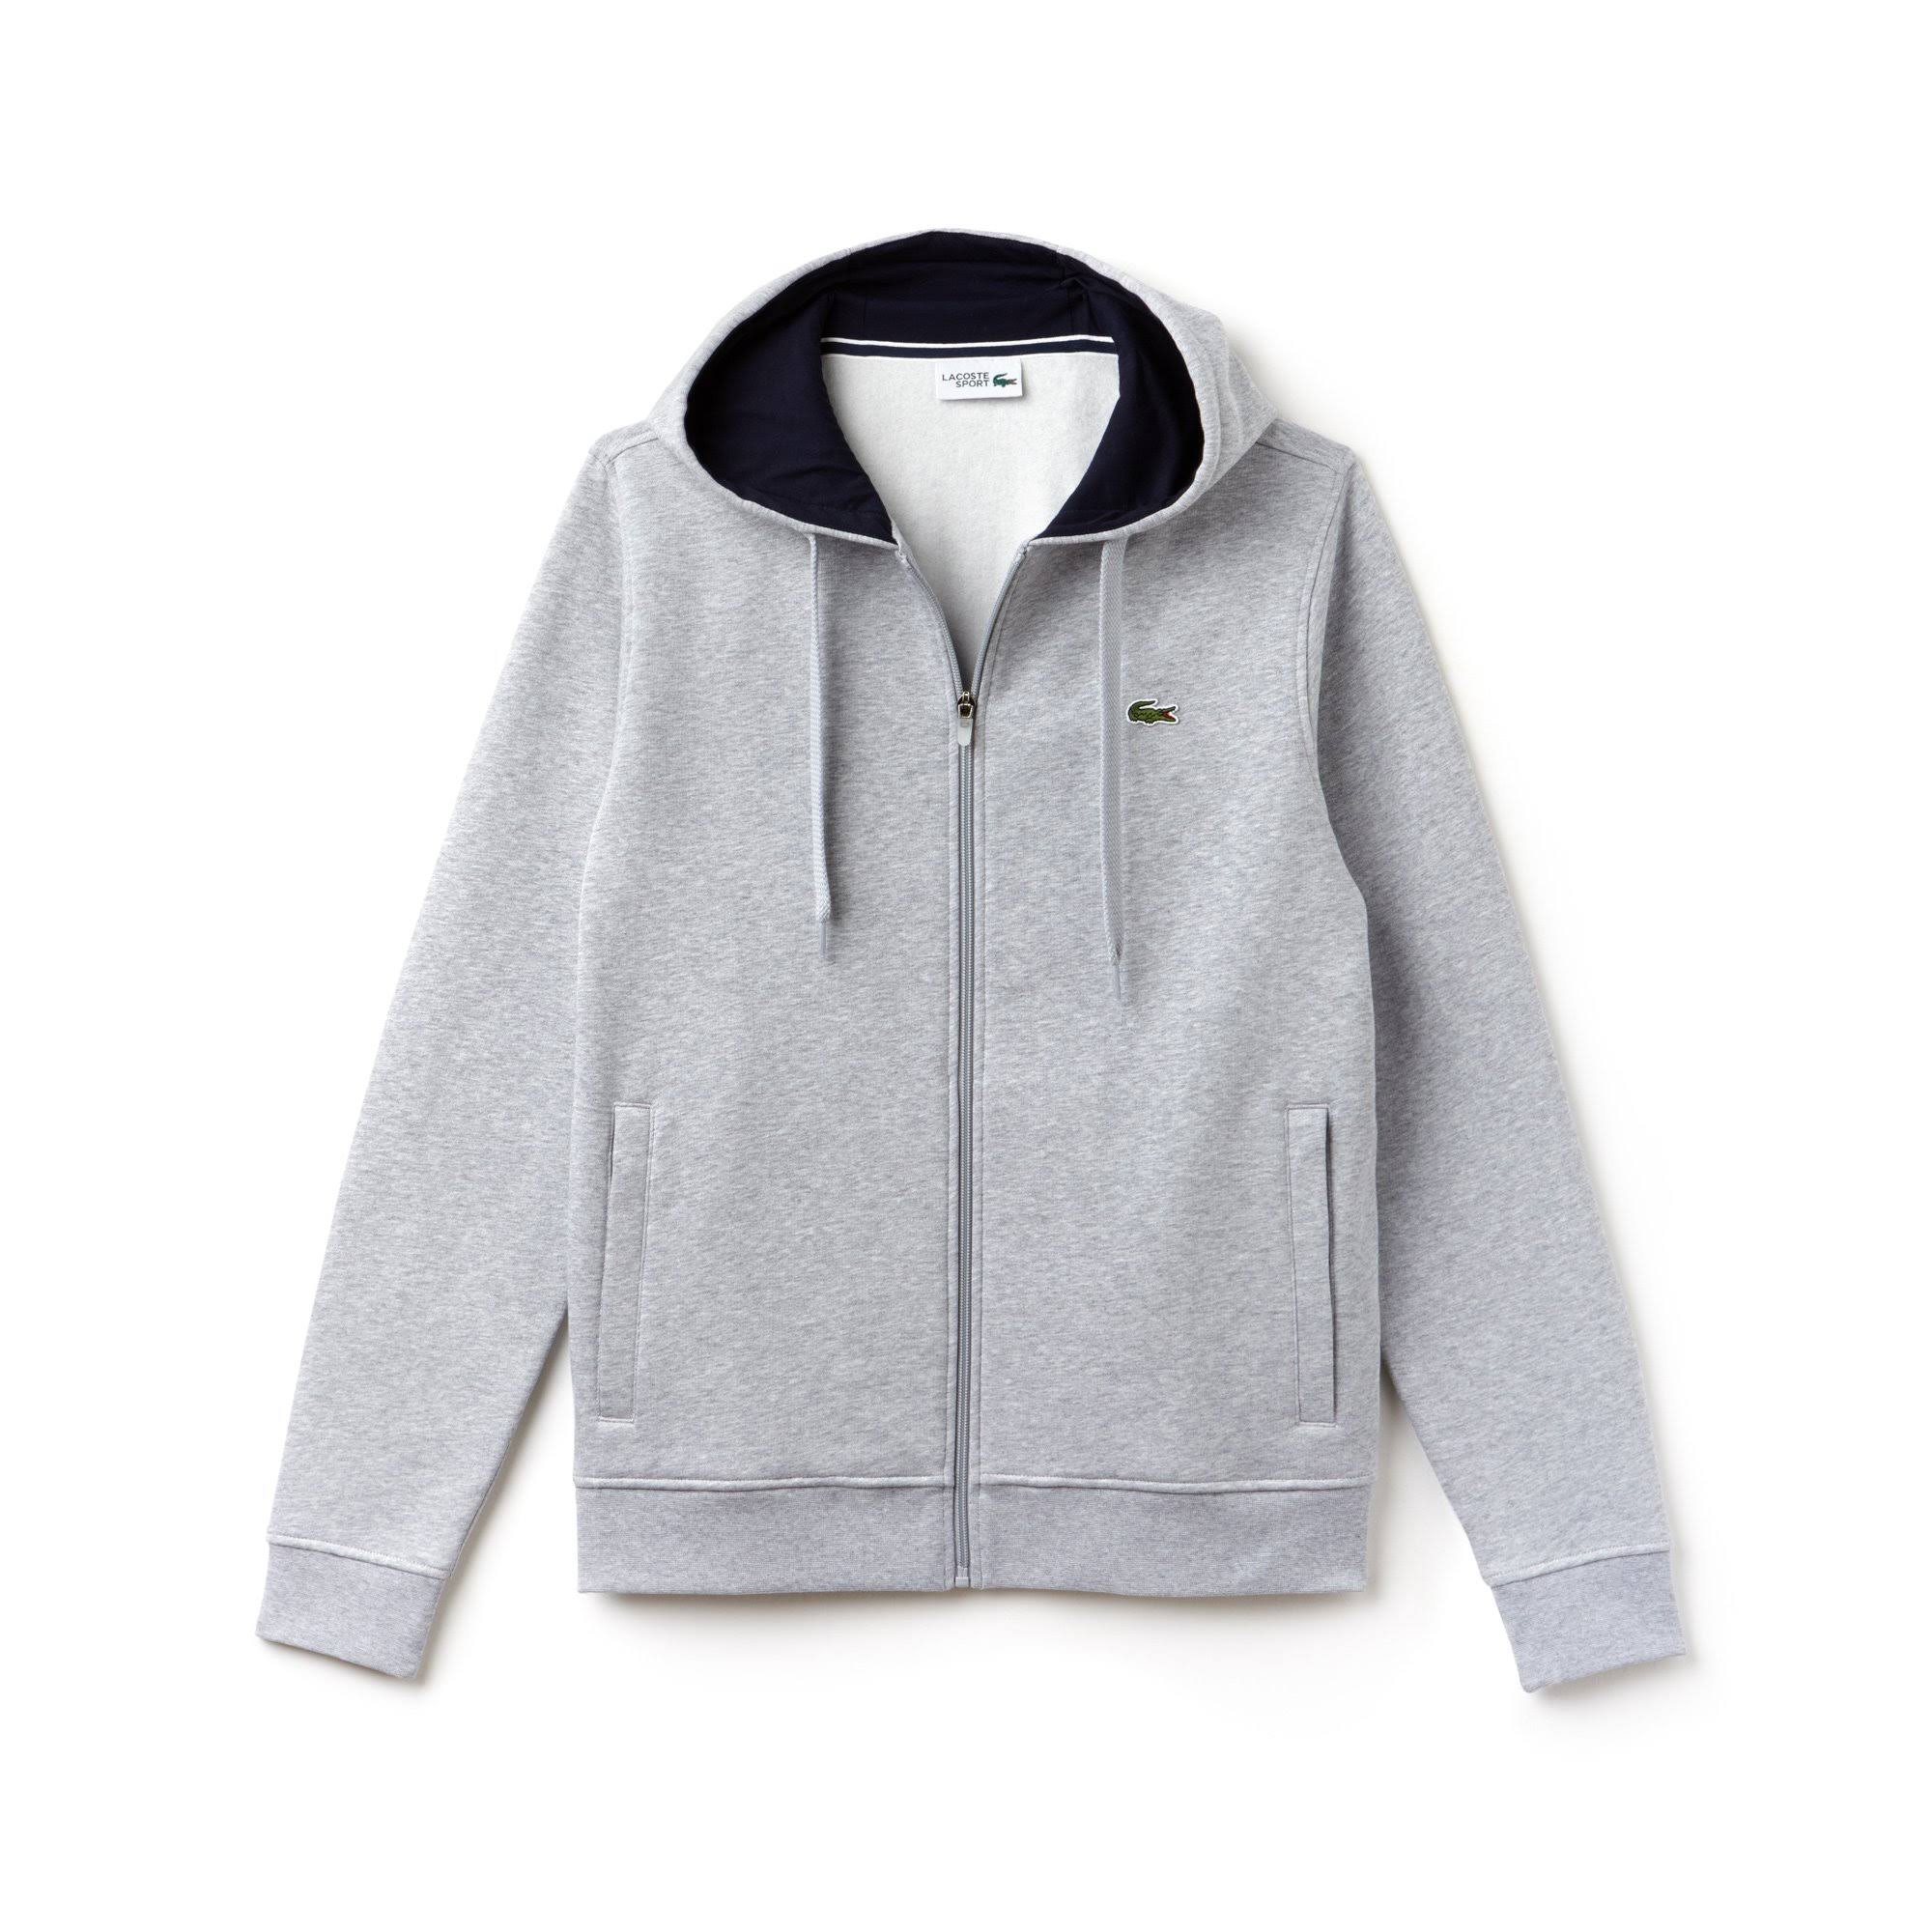 Zip Full Chine Hoodie Silver Navy Sport Tennis Fleece Regular Lacoste I6x1UFww